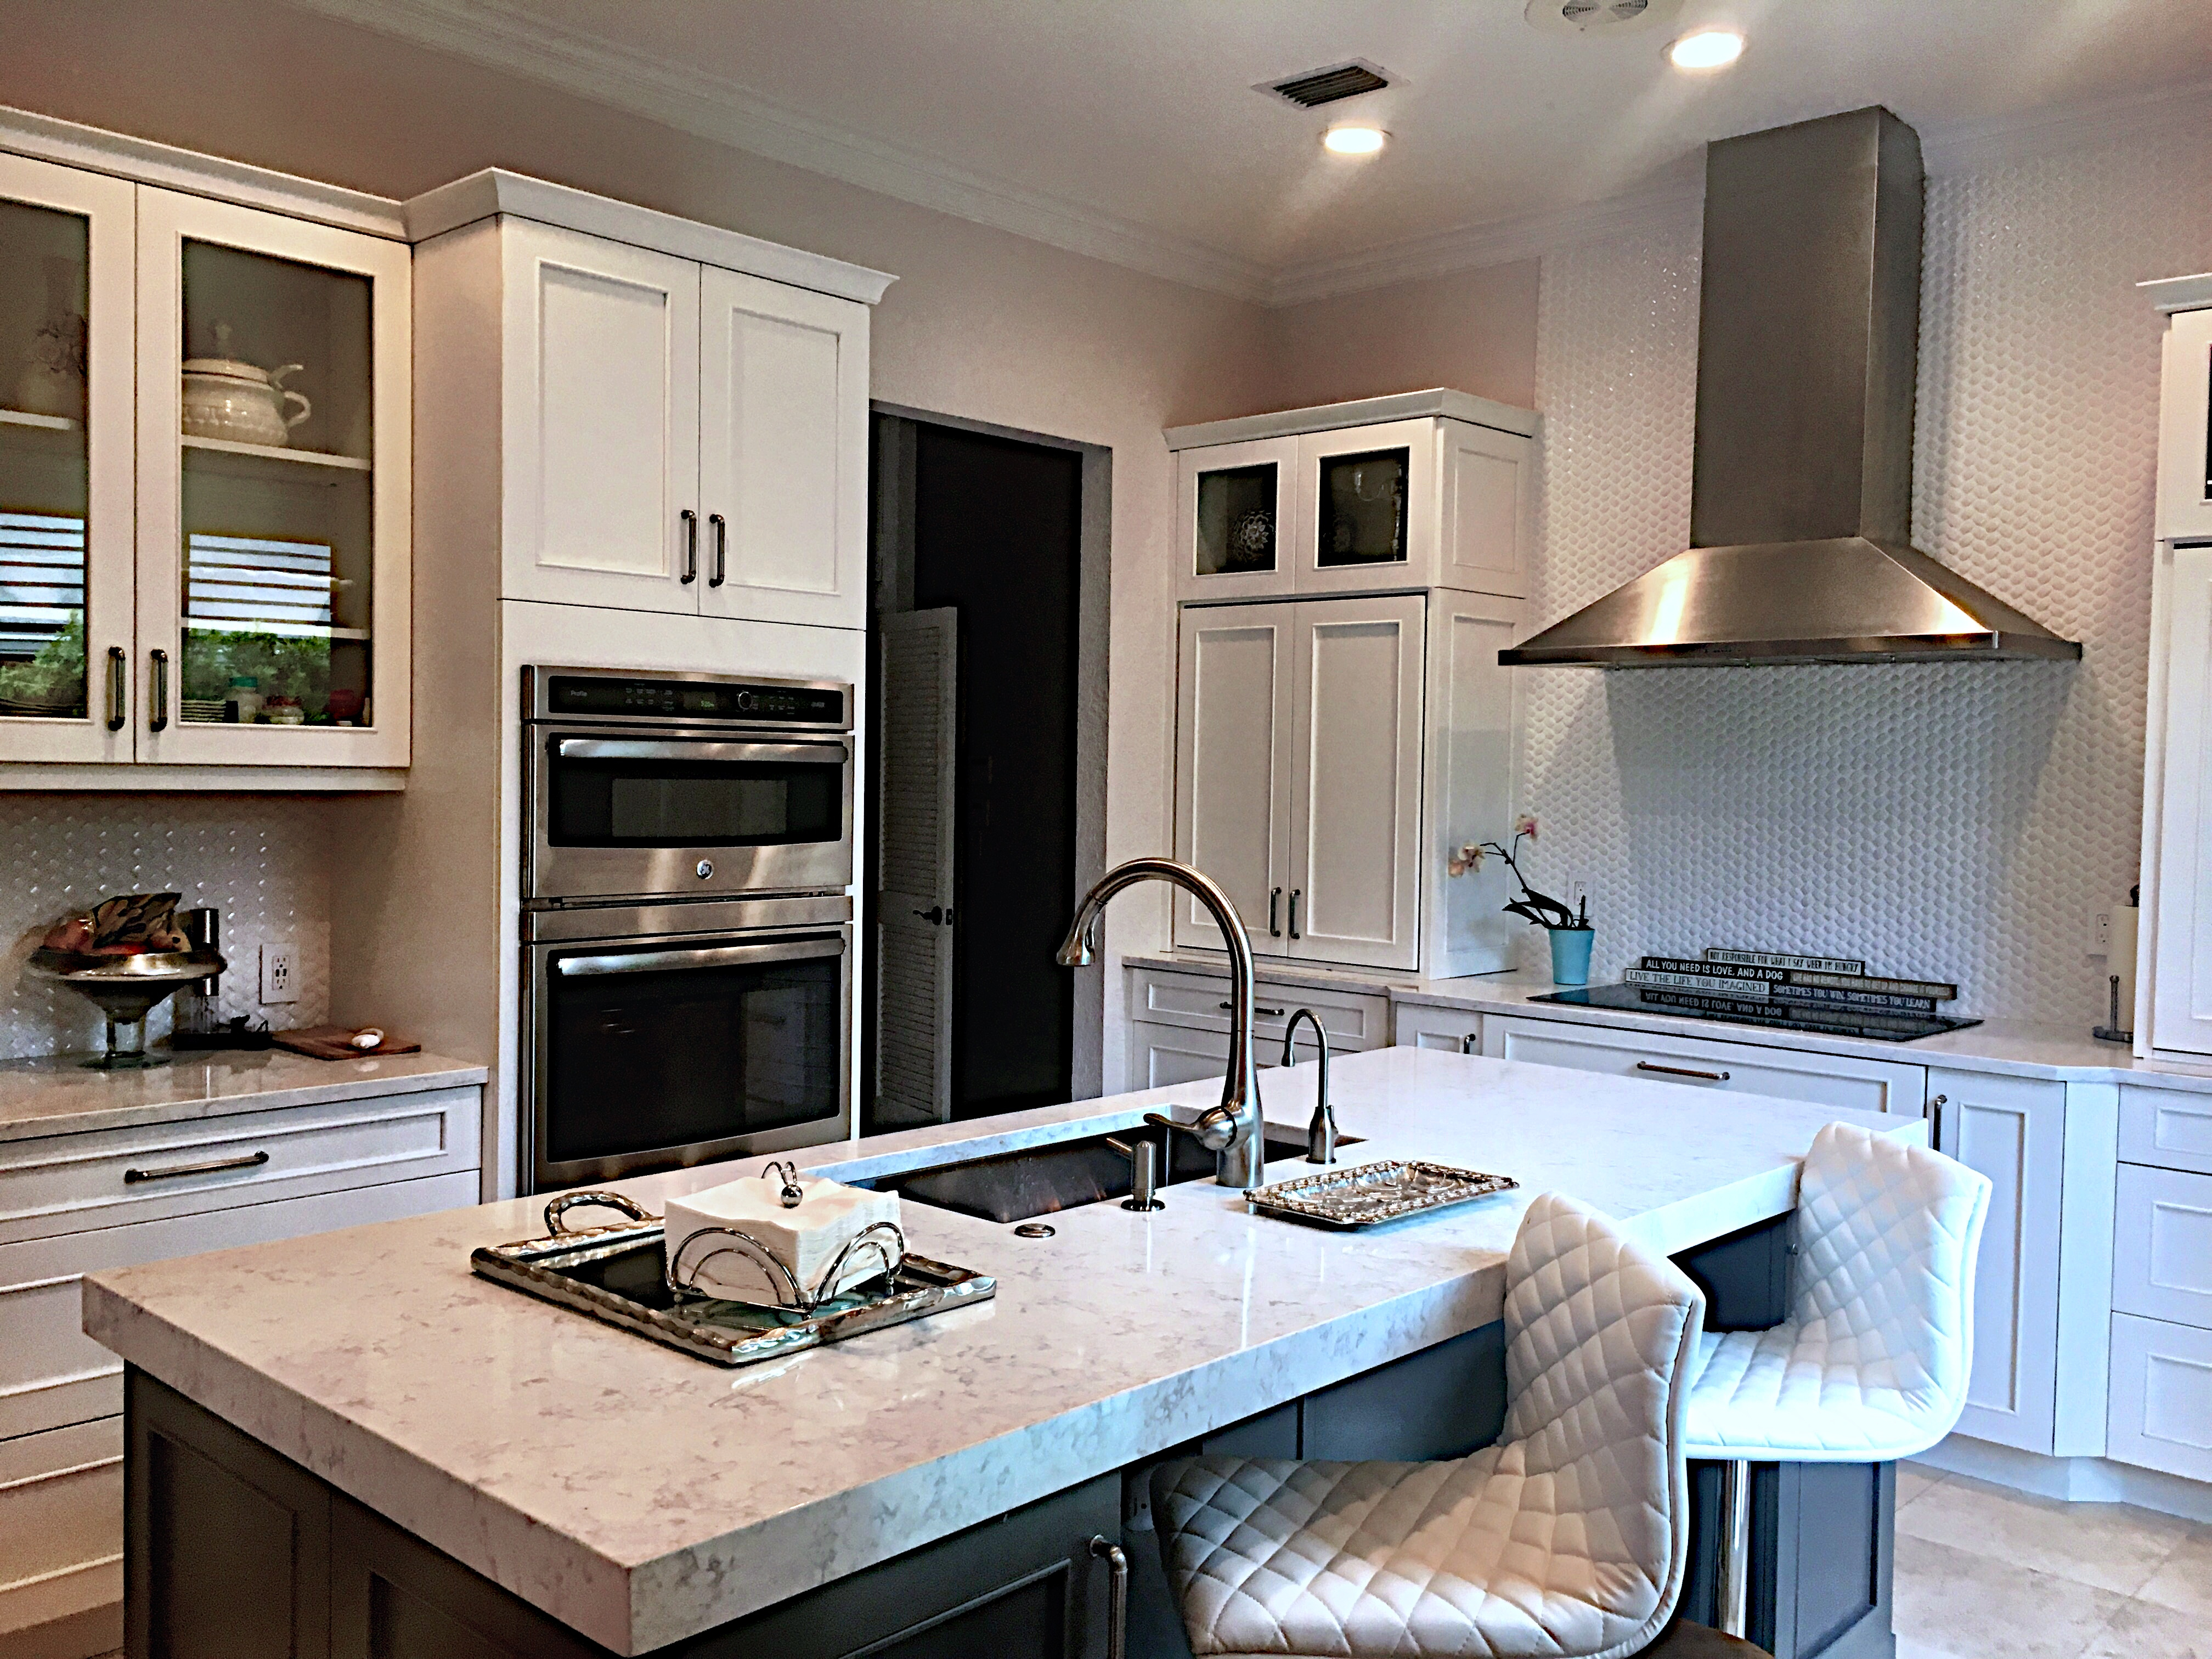 Kitchen Remodeling And Renovations In Savannah Georgia 912-481-8353